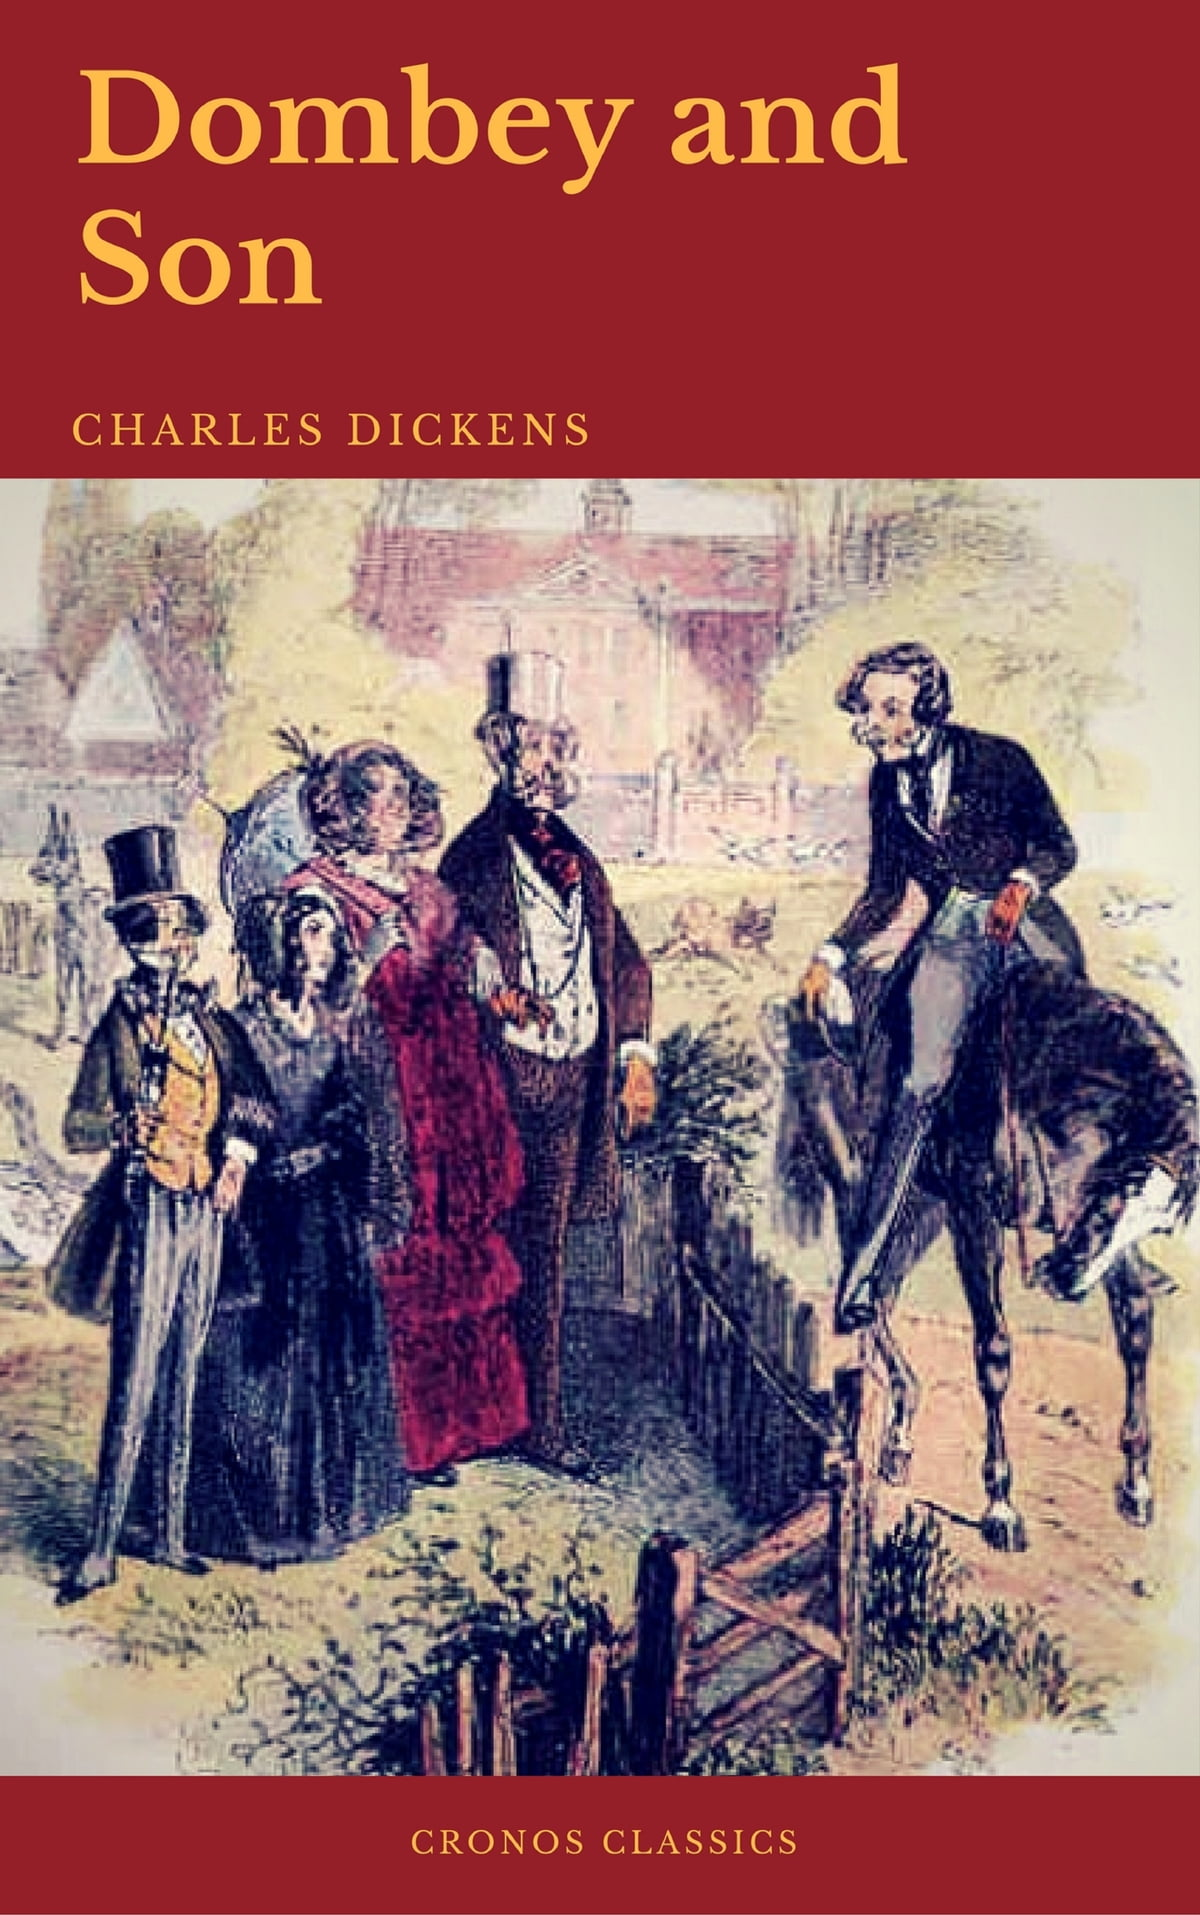 Dombey and Son (Cronos Classics) eBook by Charles Dickens - 9782378073671 |  Rakuten Kobo Greece